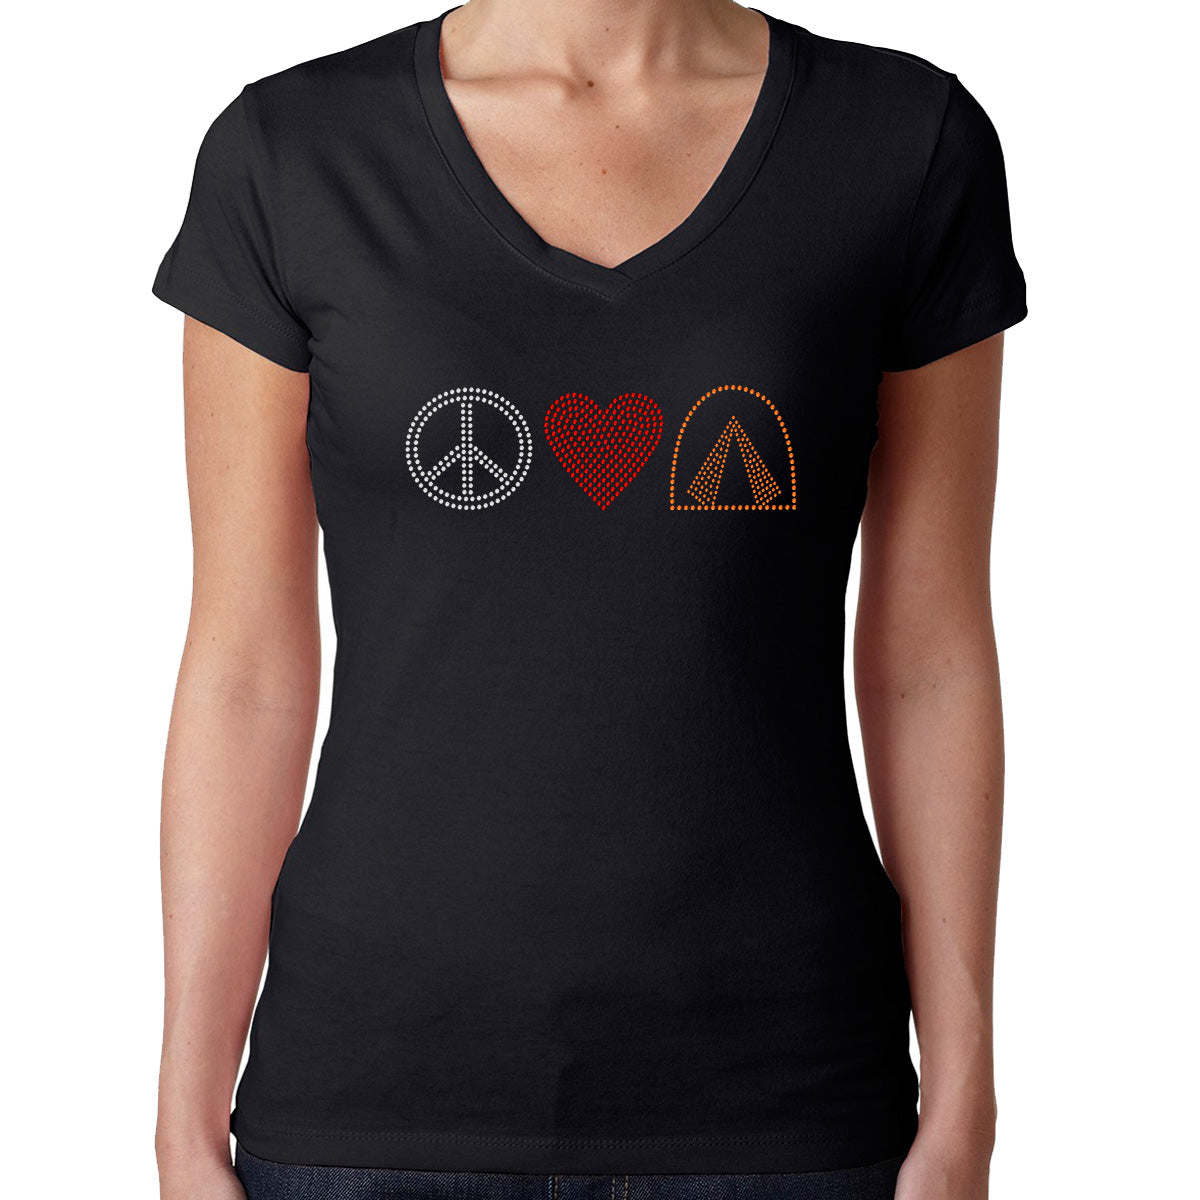 Womens T-Shirt Rhinestone Bling Black Fitted Tee Peace Sign Love Heart Camping